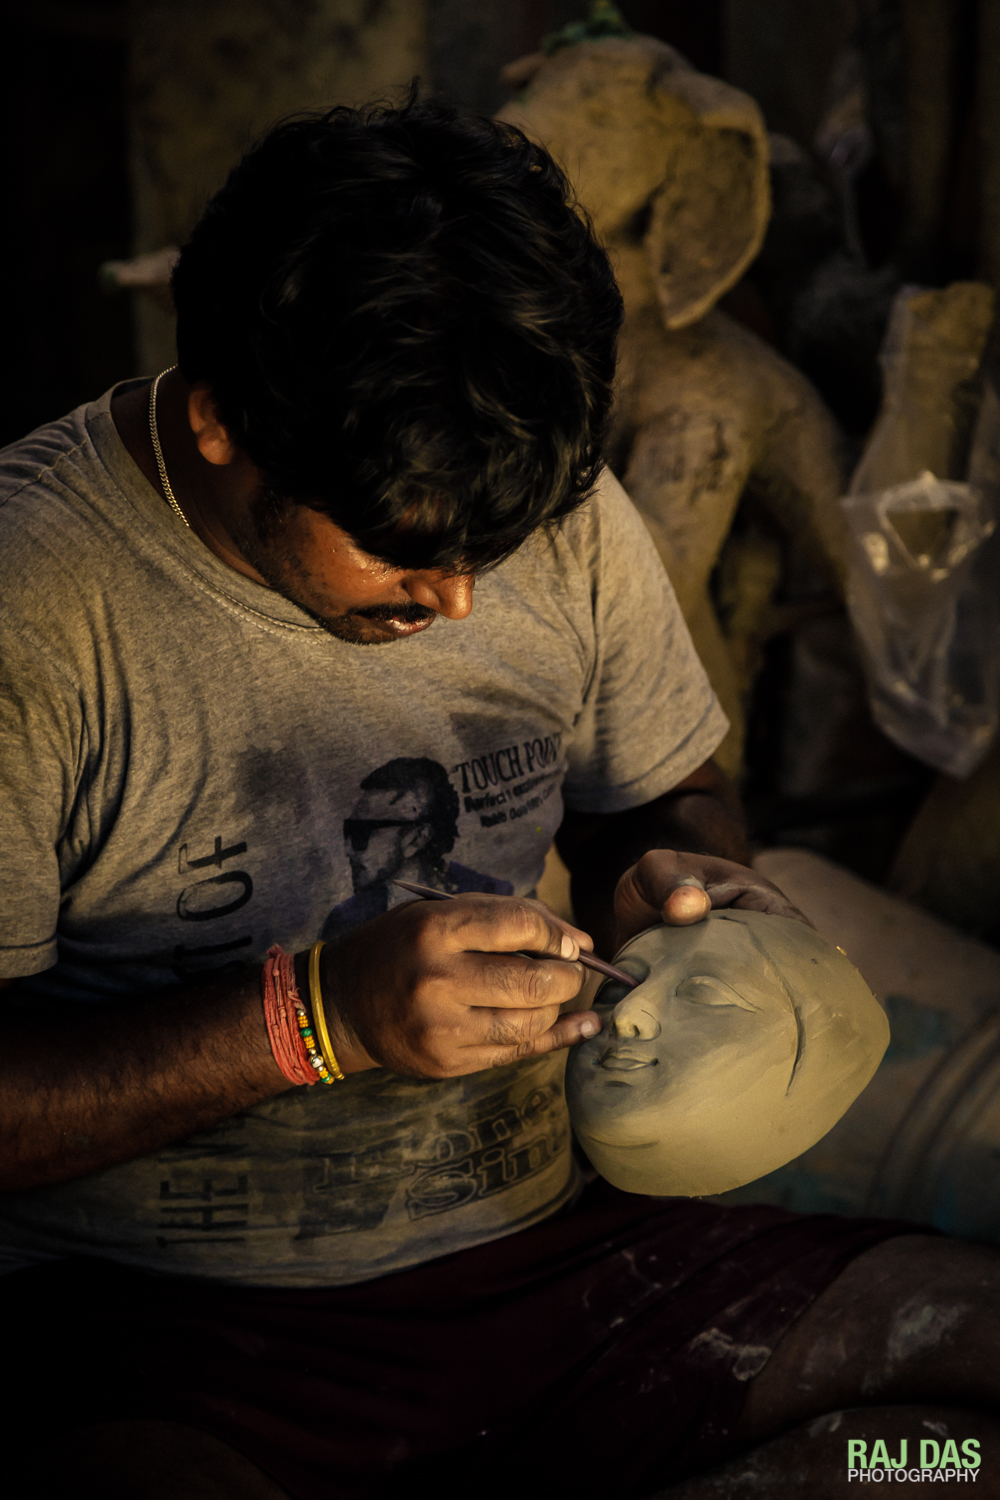 Making the idol's face and painting the eyes requires an artisan with special skill